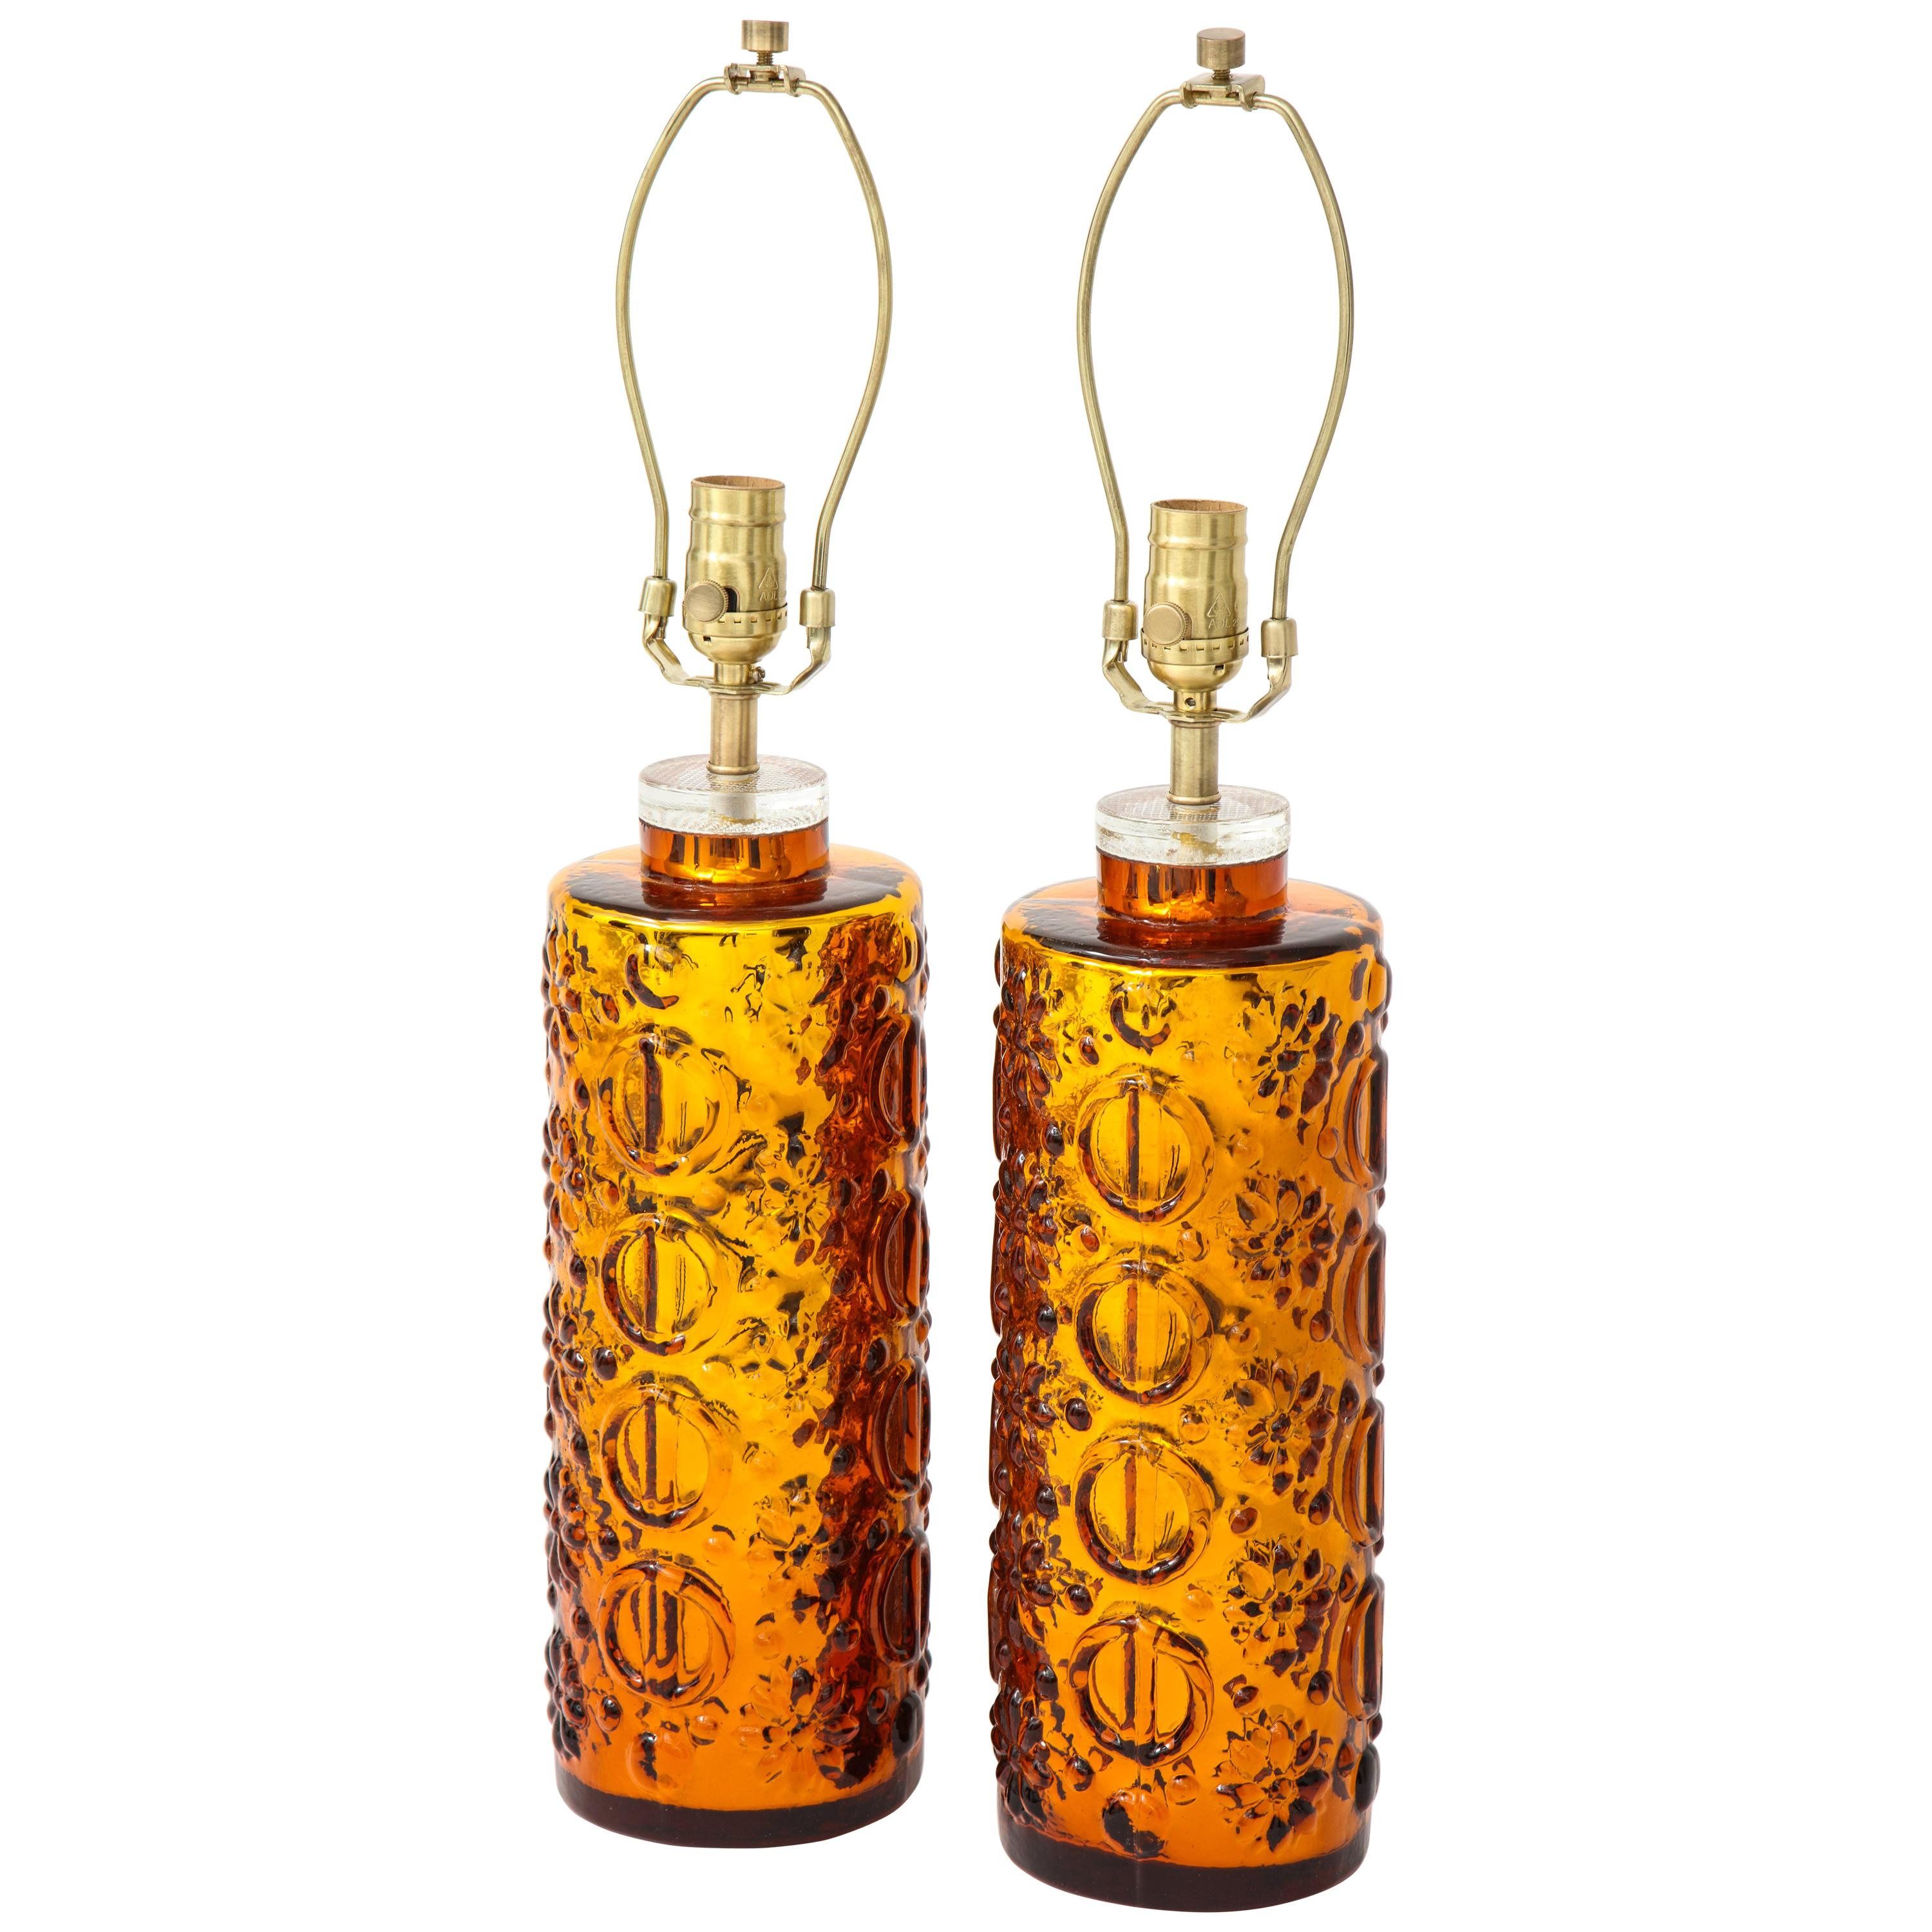 Johansfors Patterned Gold Mercury Glass Lamps